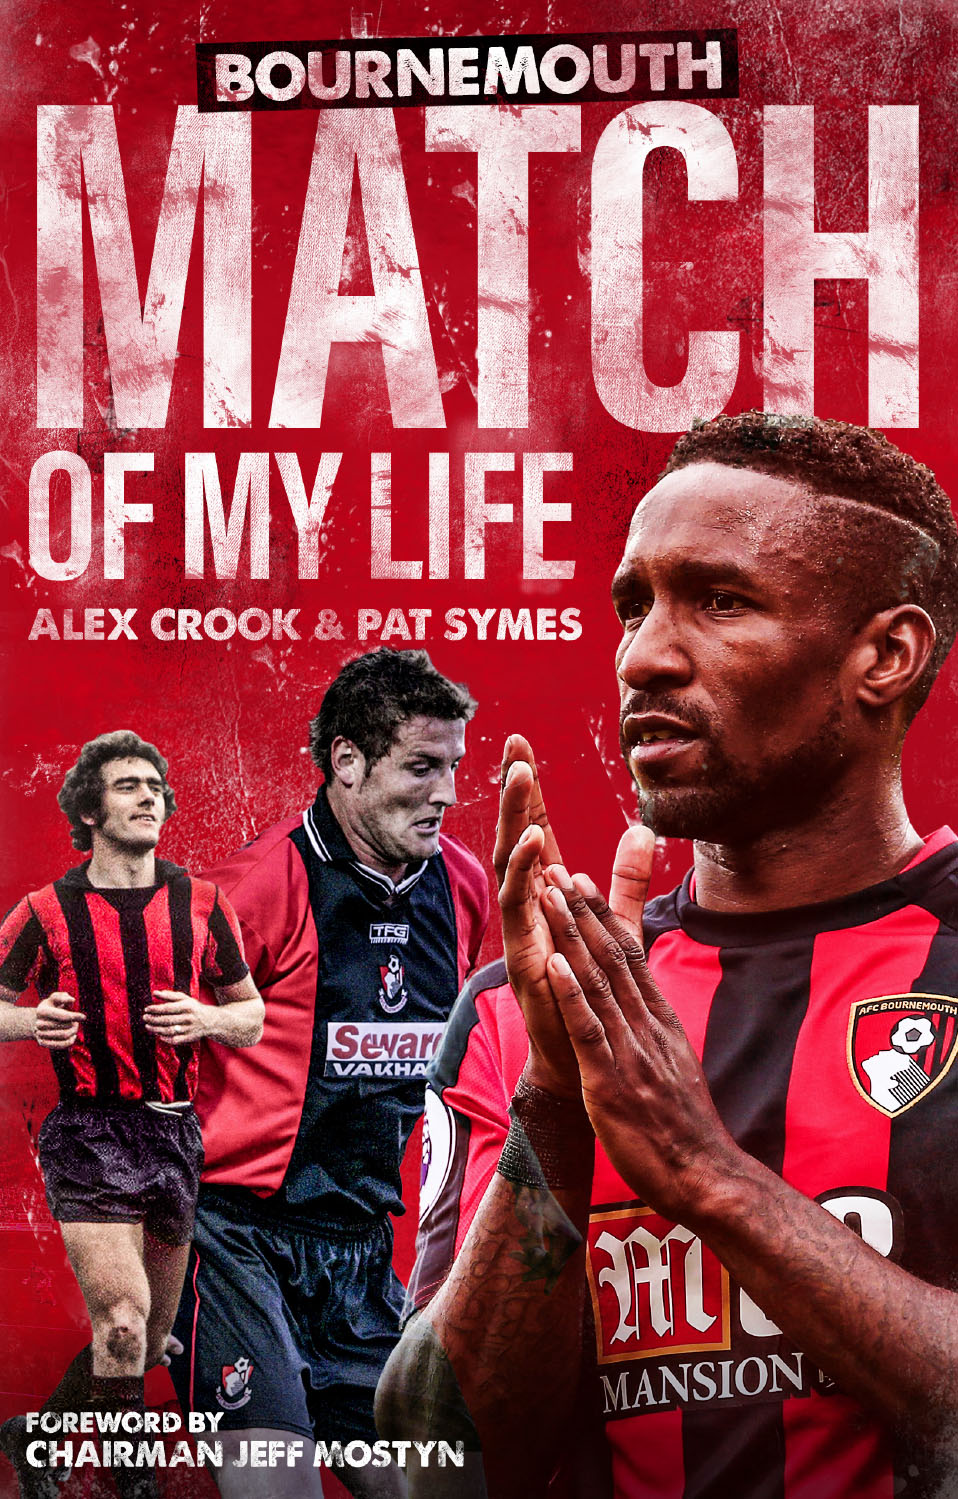 Bournemouth Match of My Life